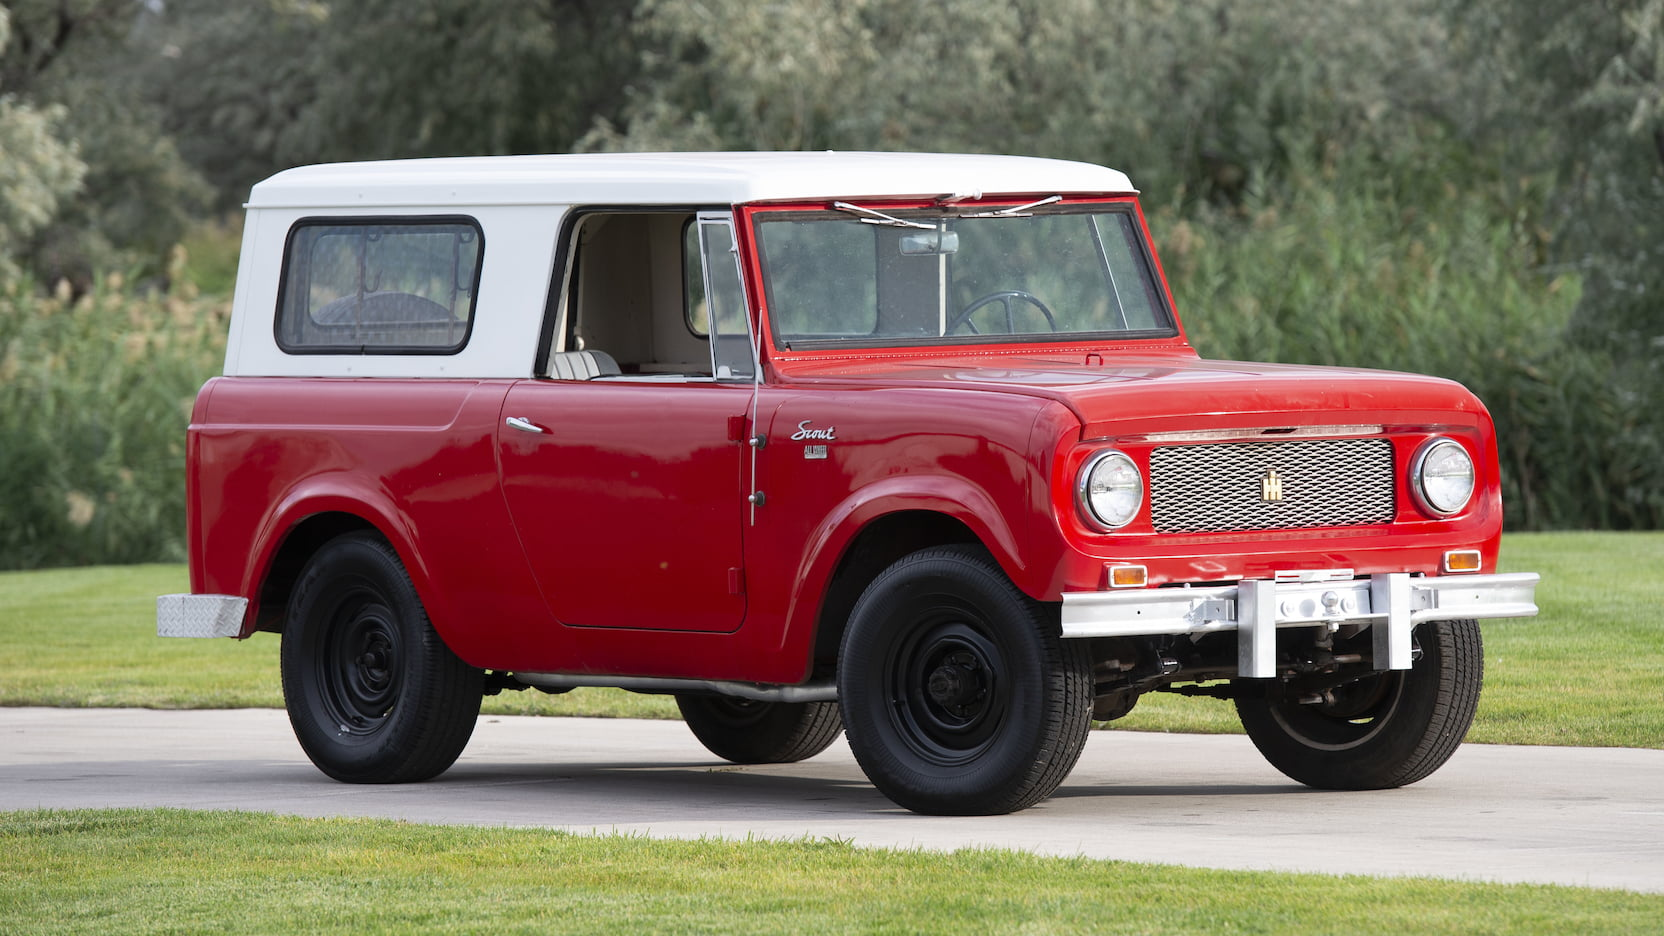 1963 international harvester scout suv front three-quarter